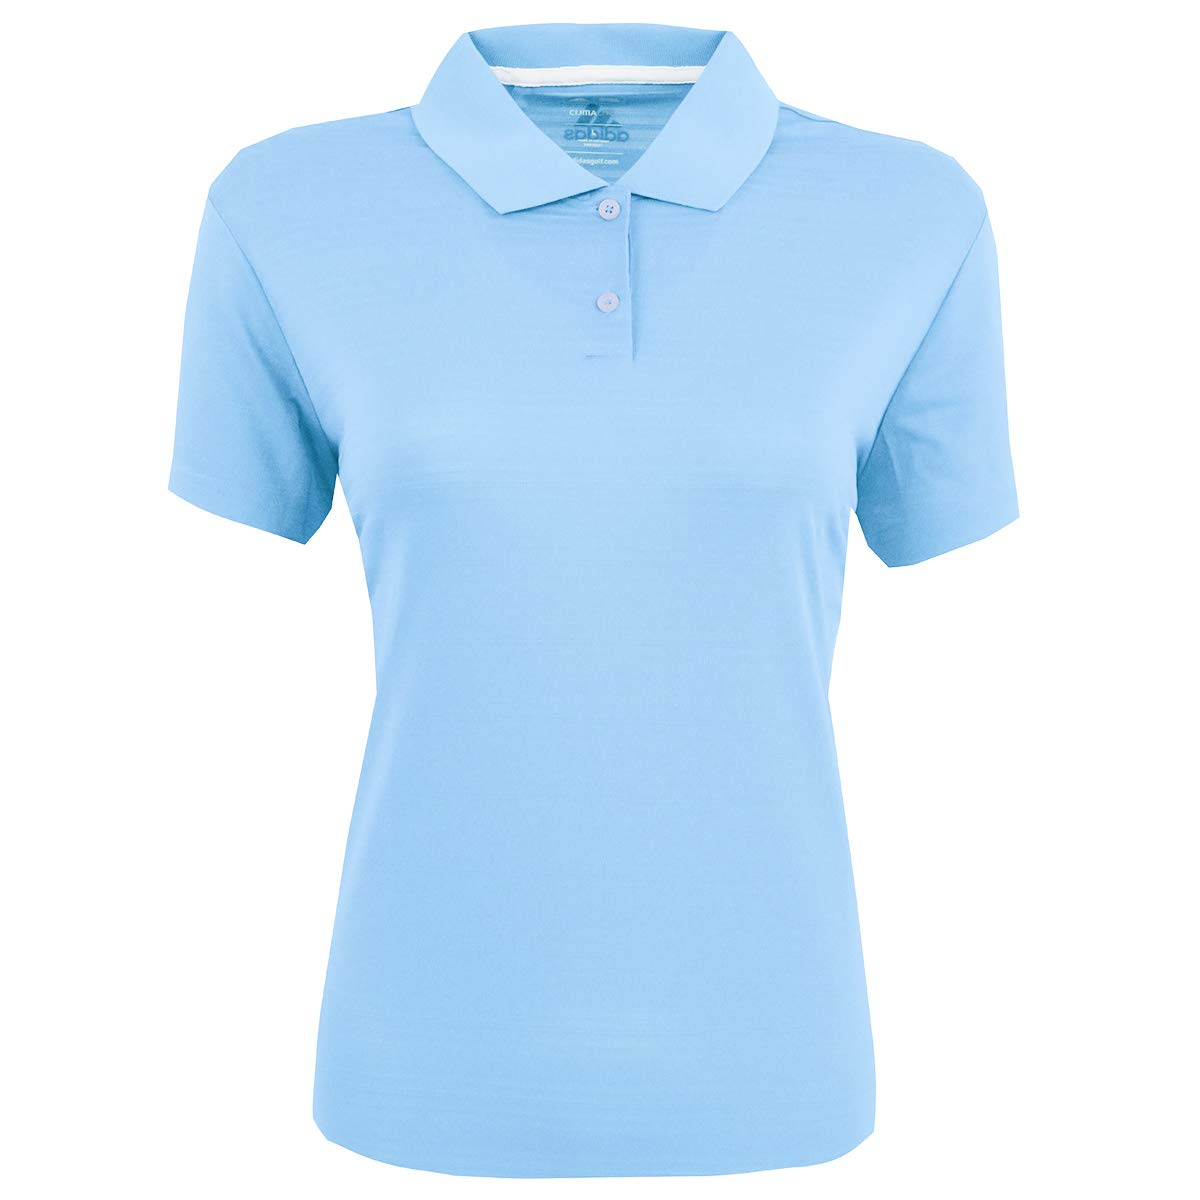 adidas Golf Womens Climalite Textured Short-Sleeve Polo (A162) -Tide -S